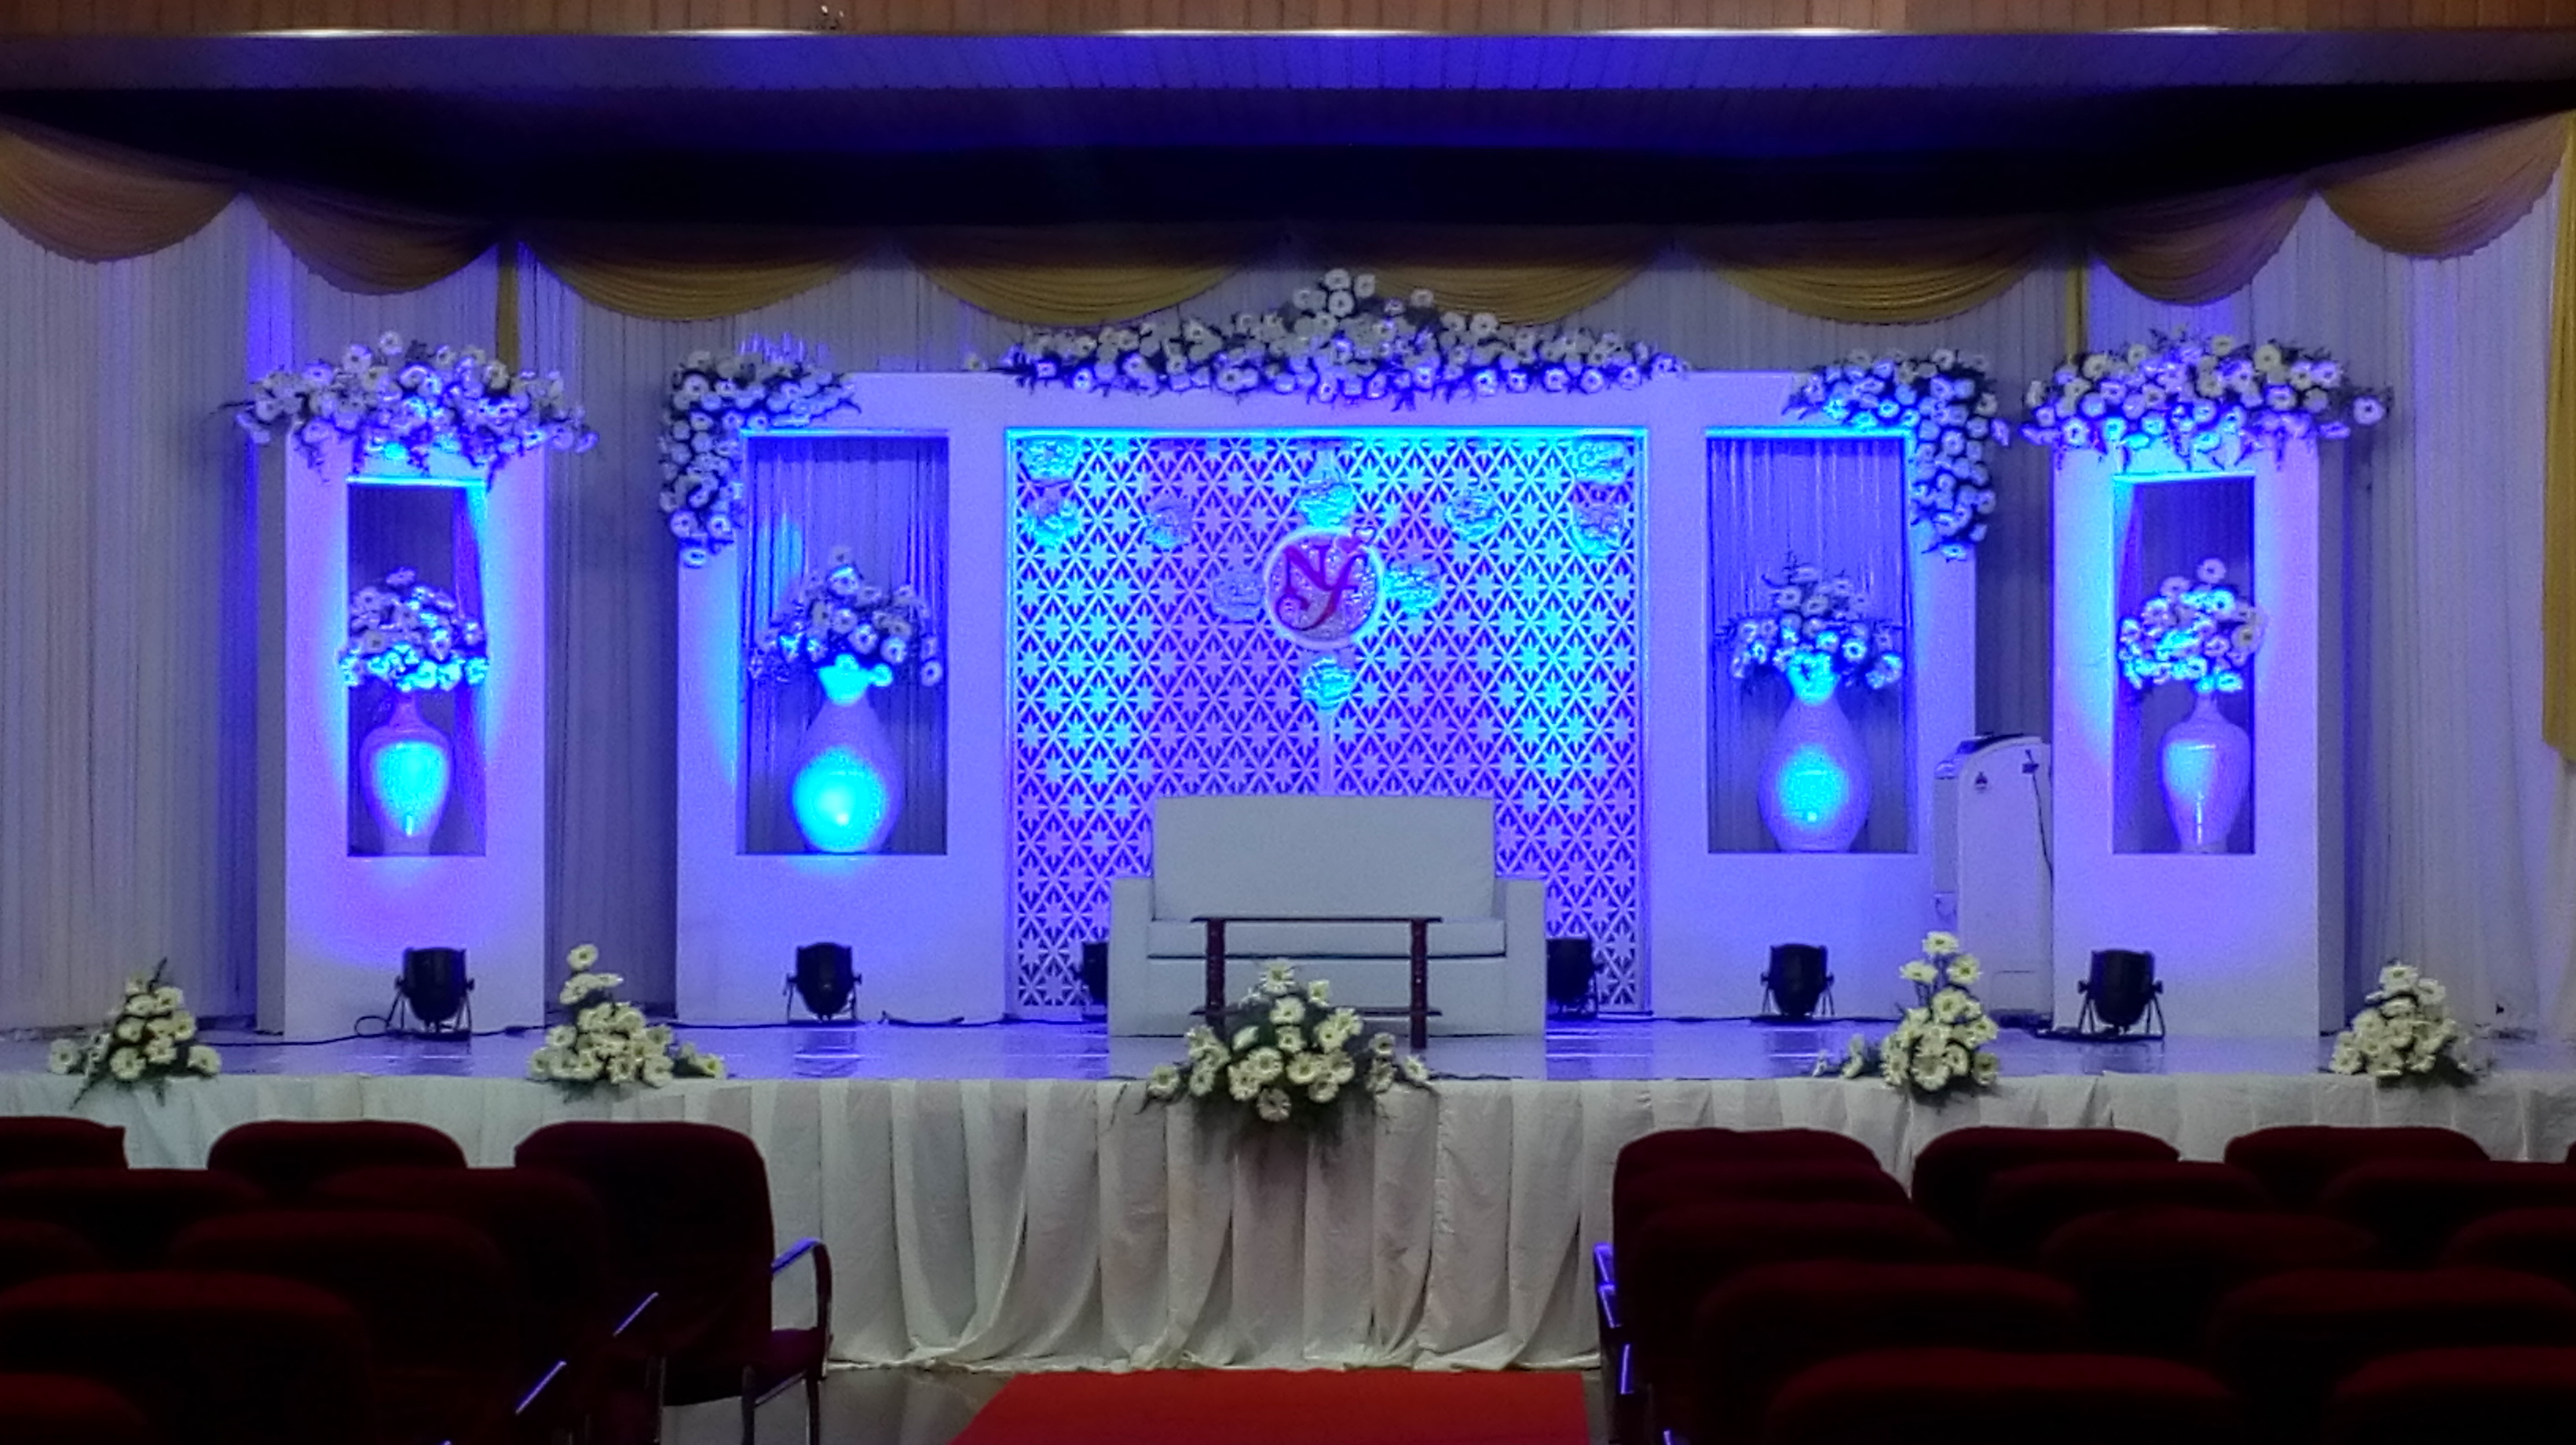 Courses of fmf events academy fmf events academy wedding stage decoration course kerala india junglespirit Images